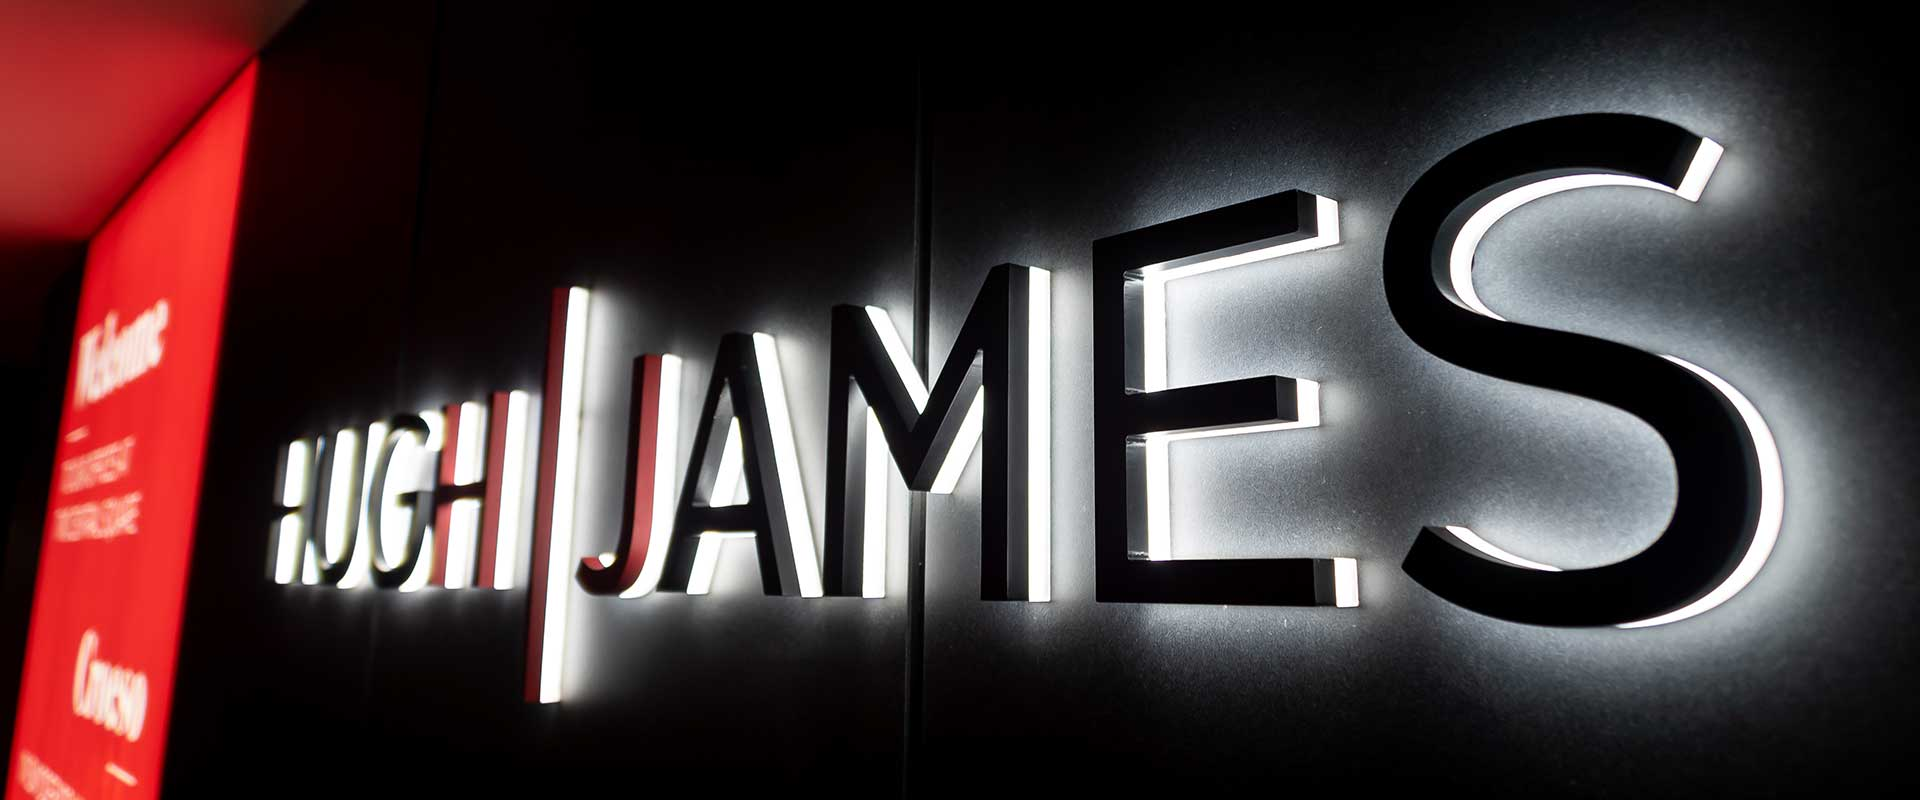 Huw James illuminated logo